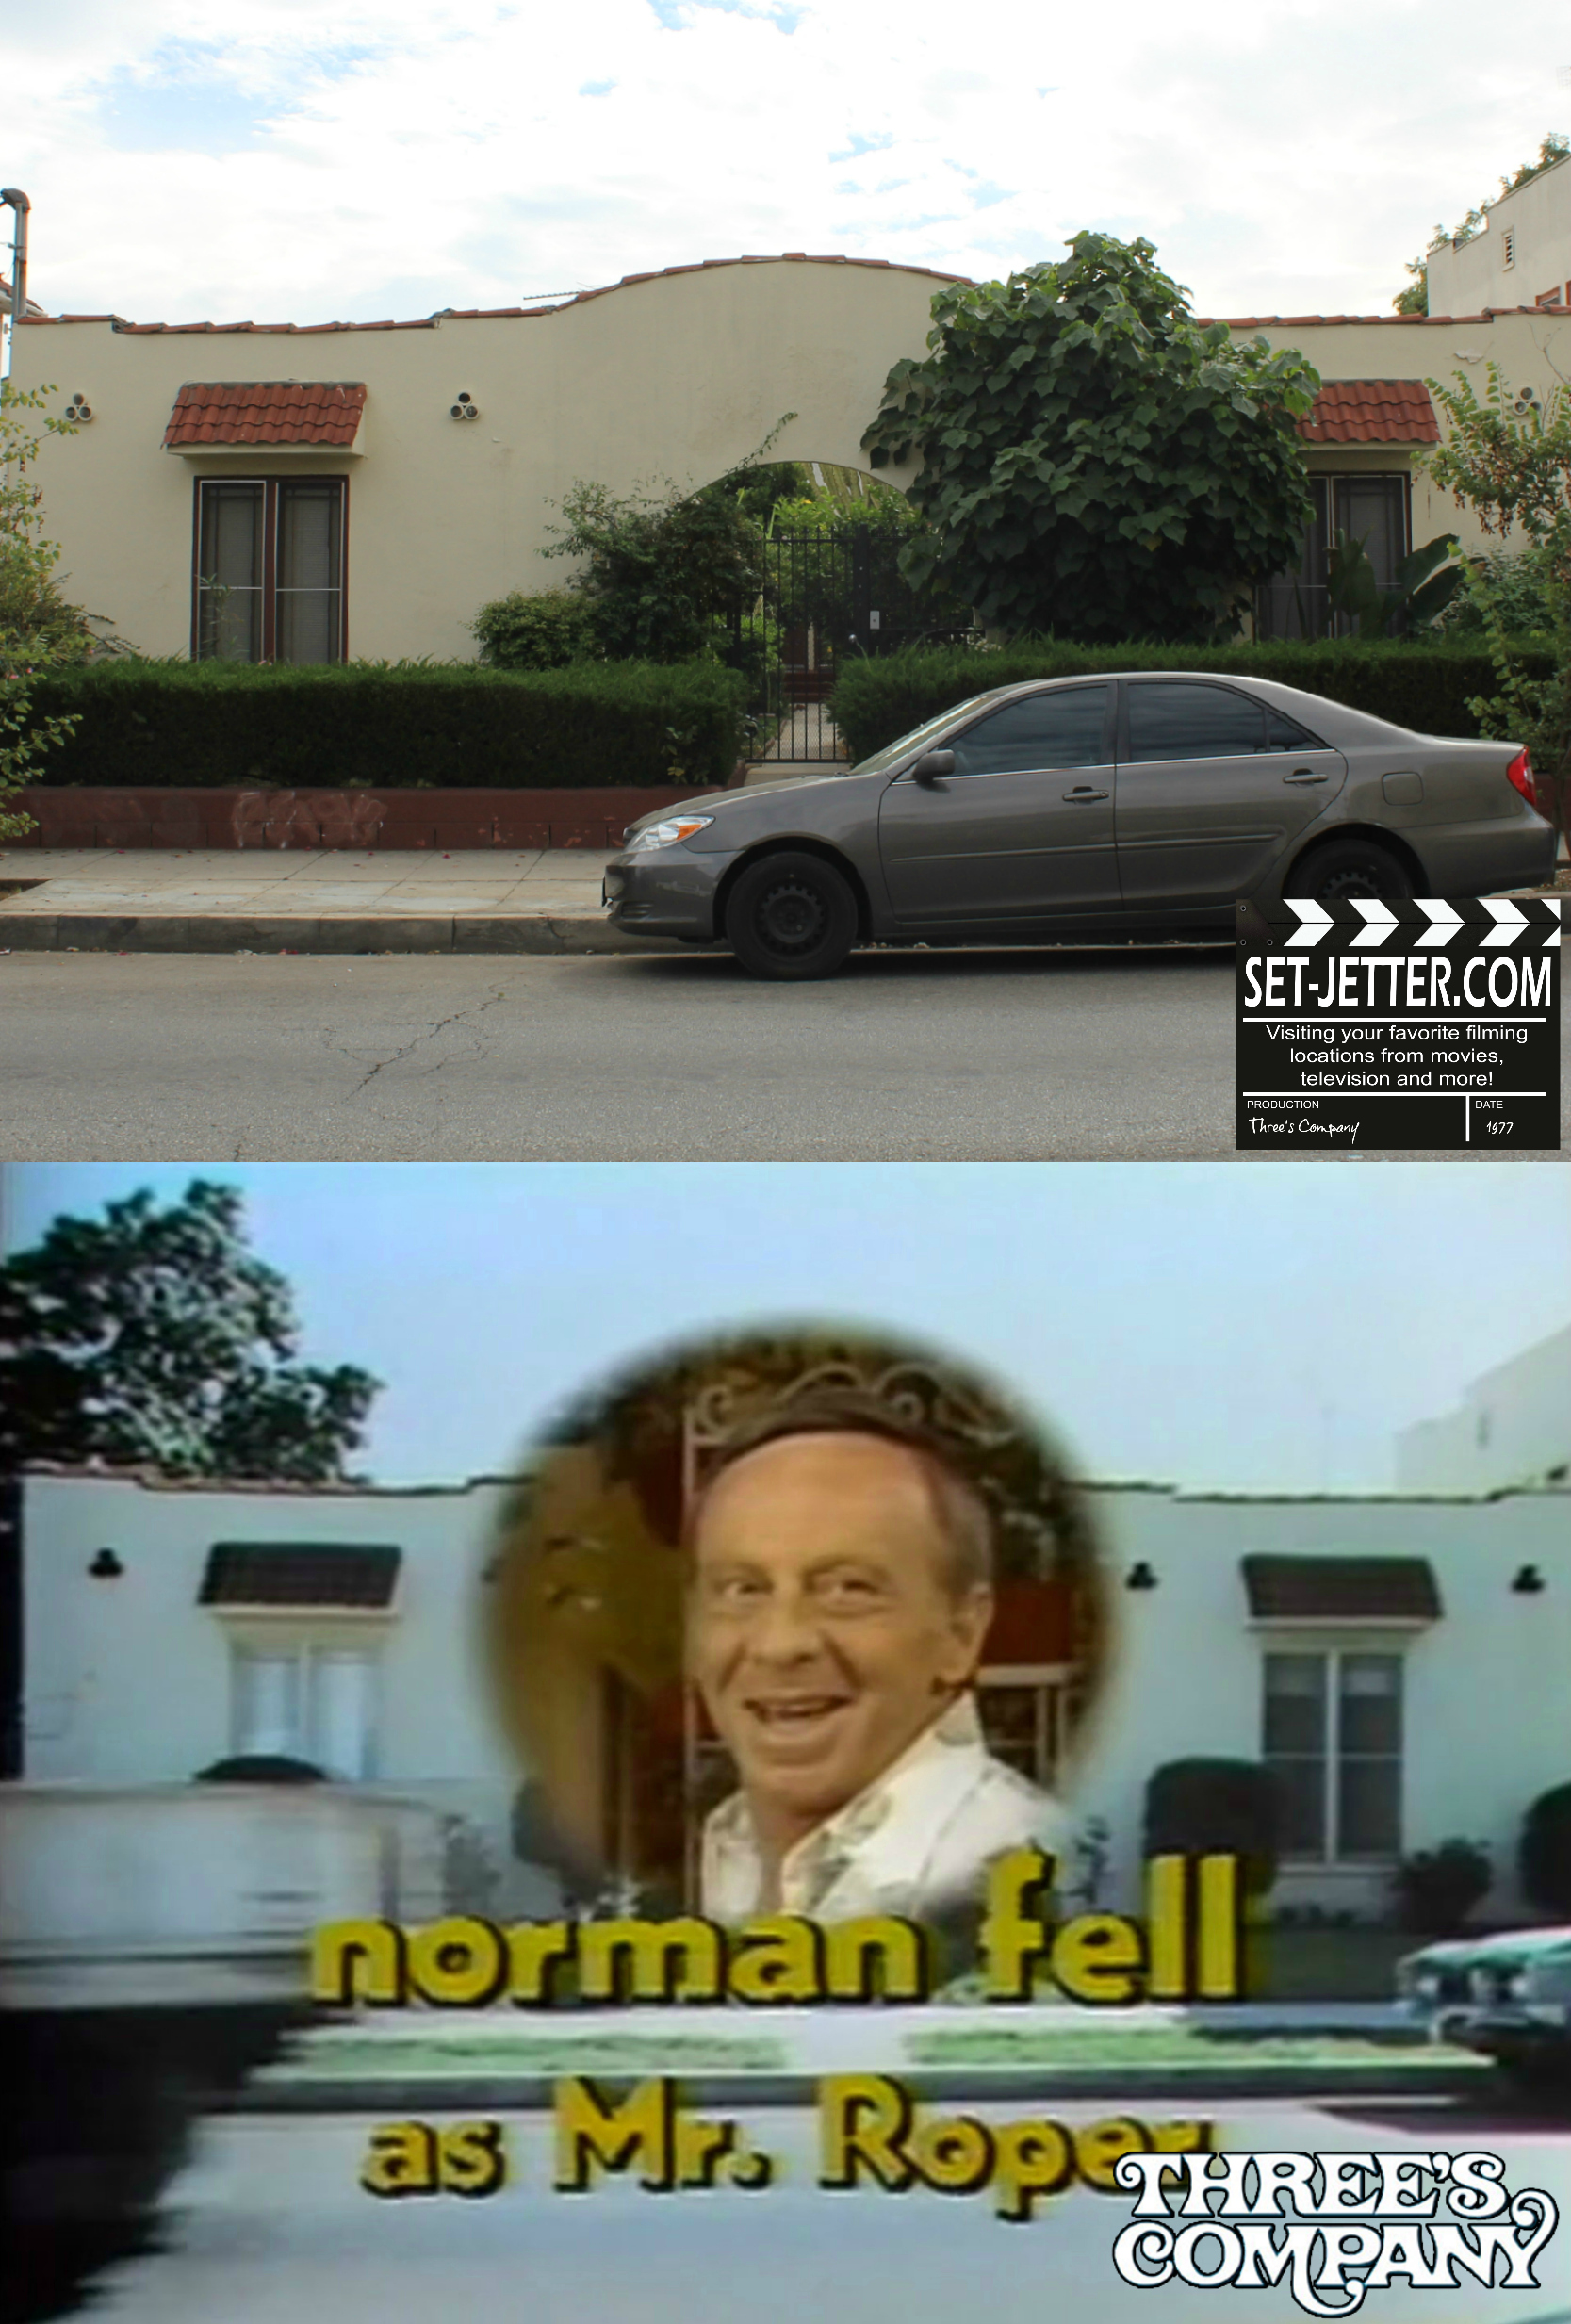 Threes Company comparison 09.jpg